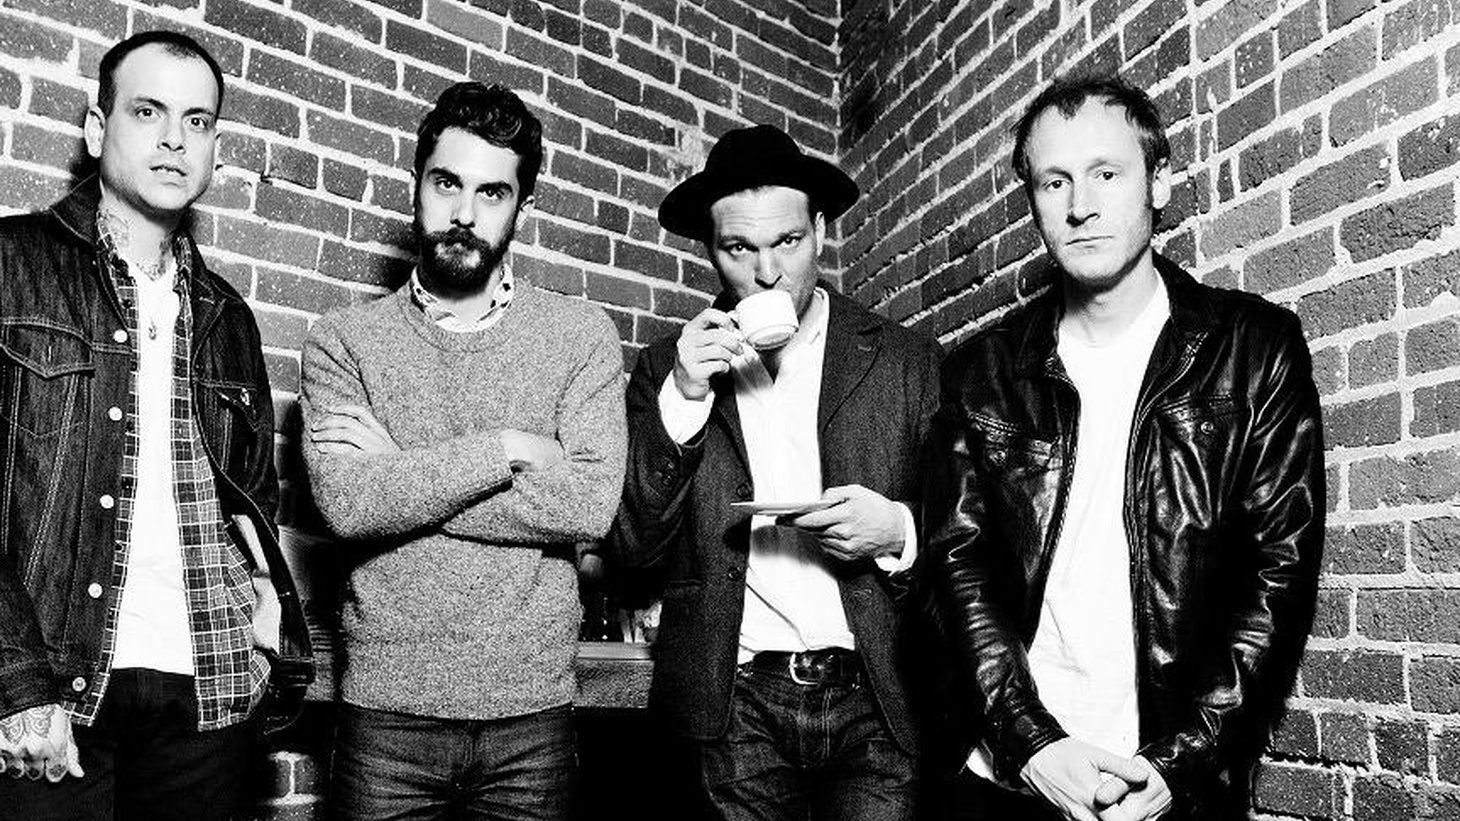 Southern California's own Cold War Kids take over the Morning Becomes Eclectic airwaves for a very special guest DJ setin the 10 o'clock hour.